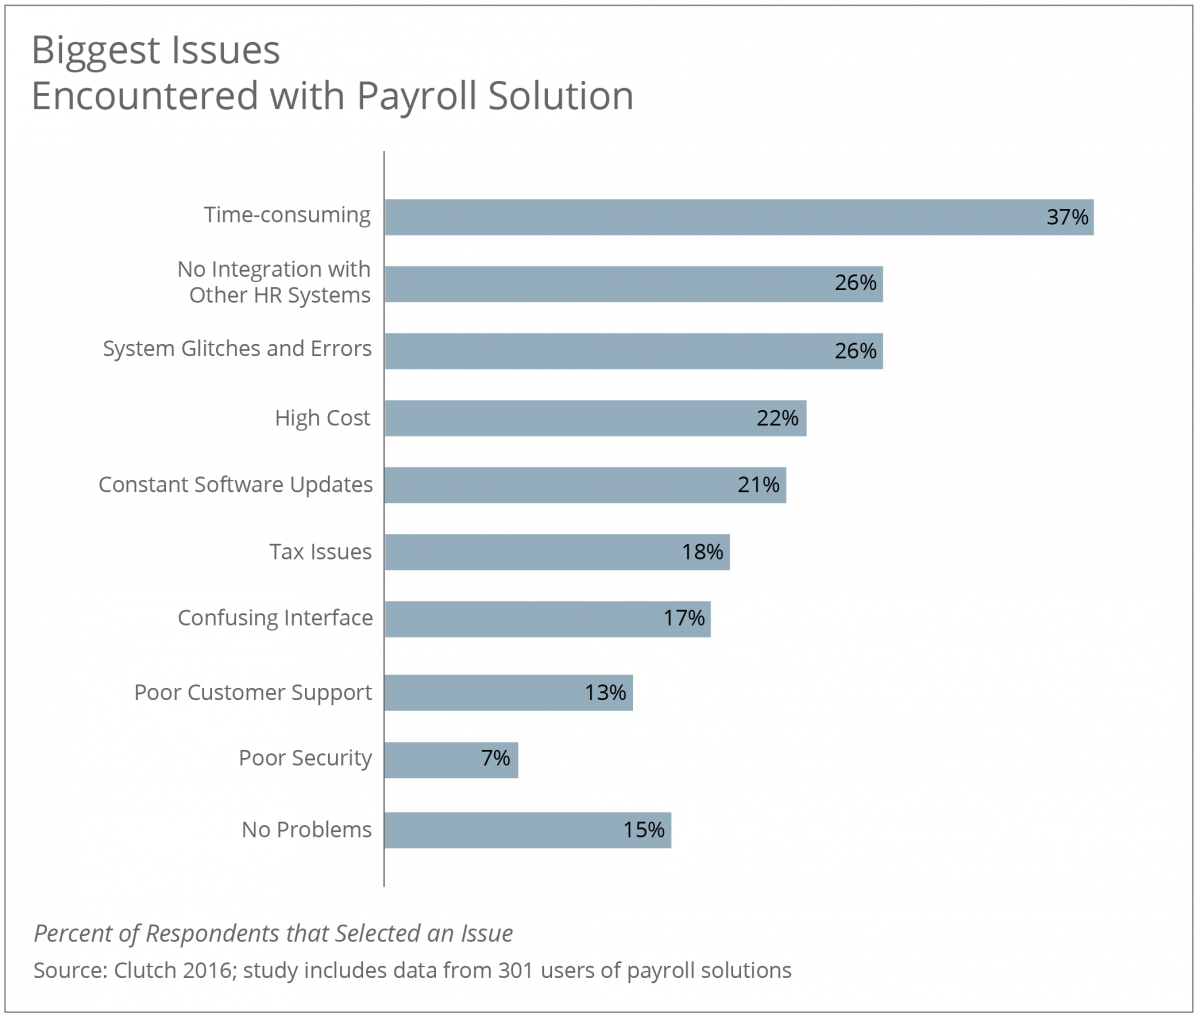 Biggest Issues Encountered with Payroll Solutions